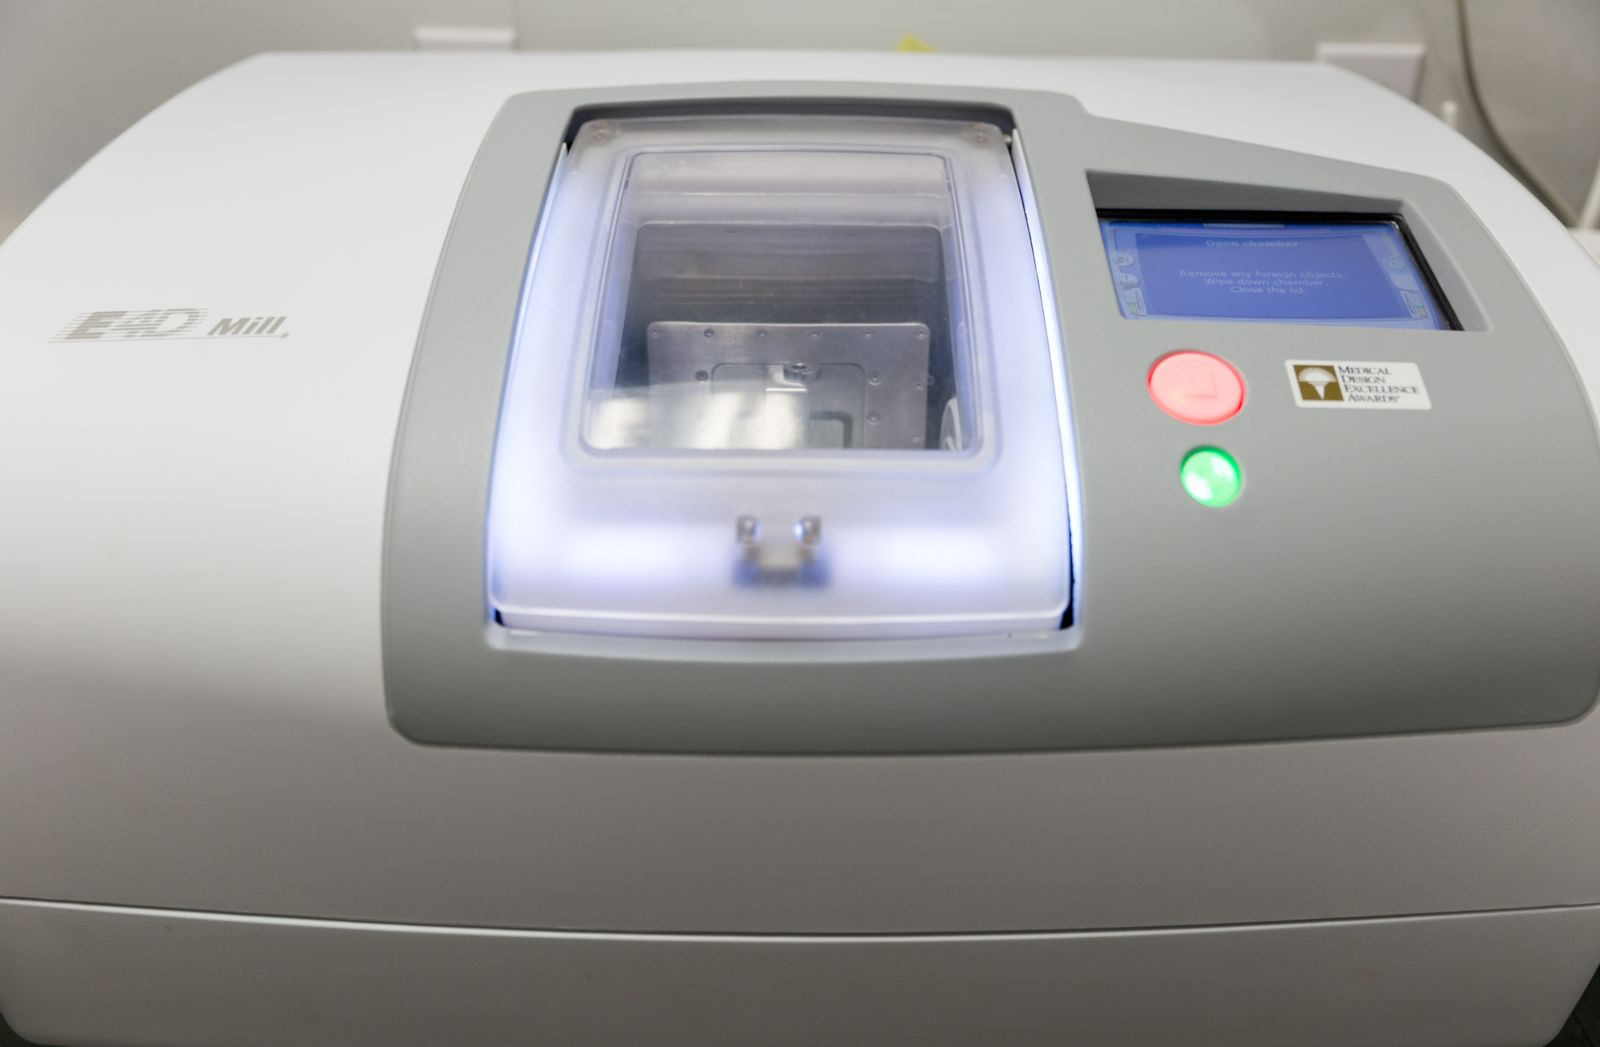 closeup of CEREC machine